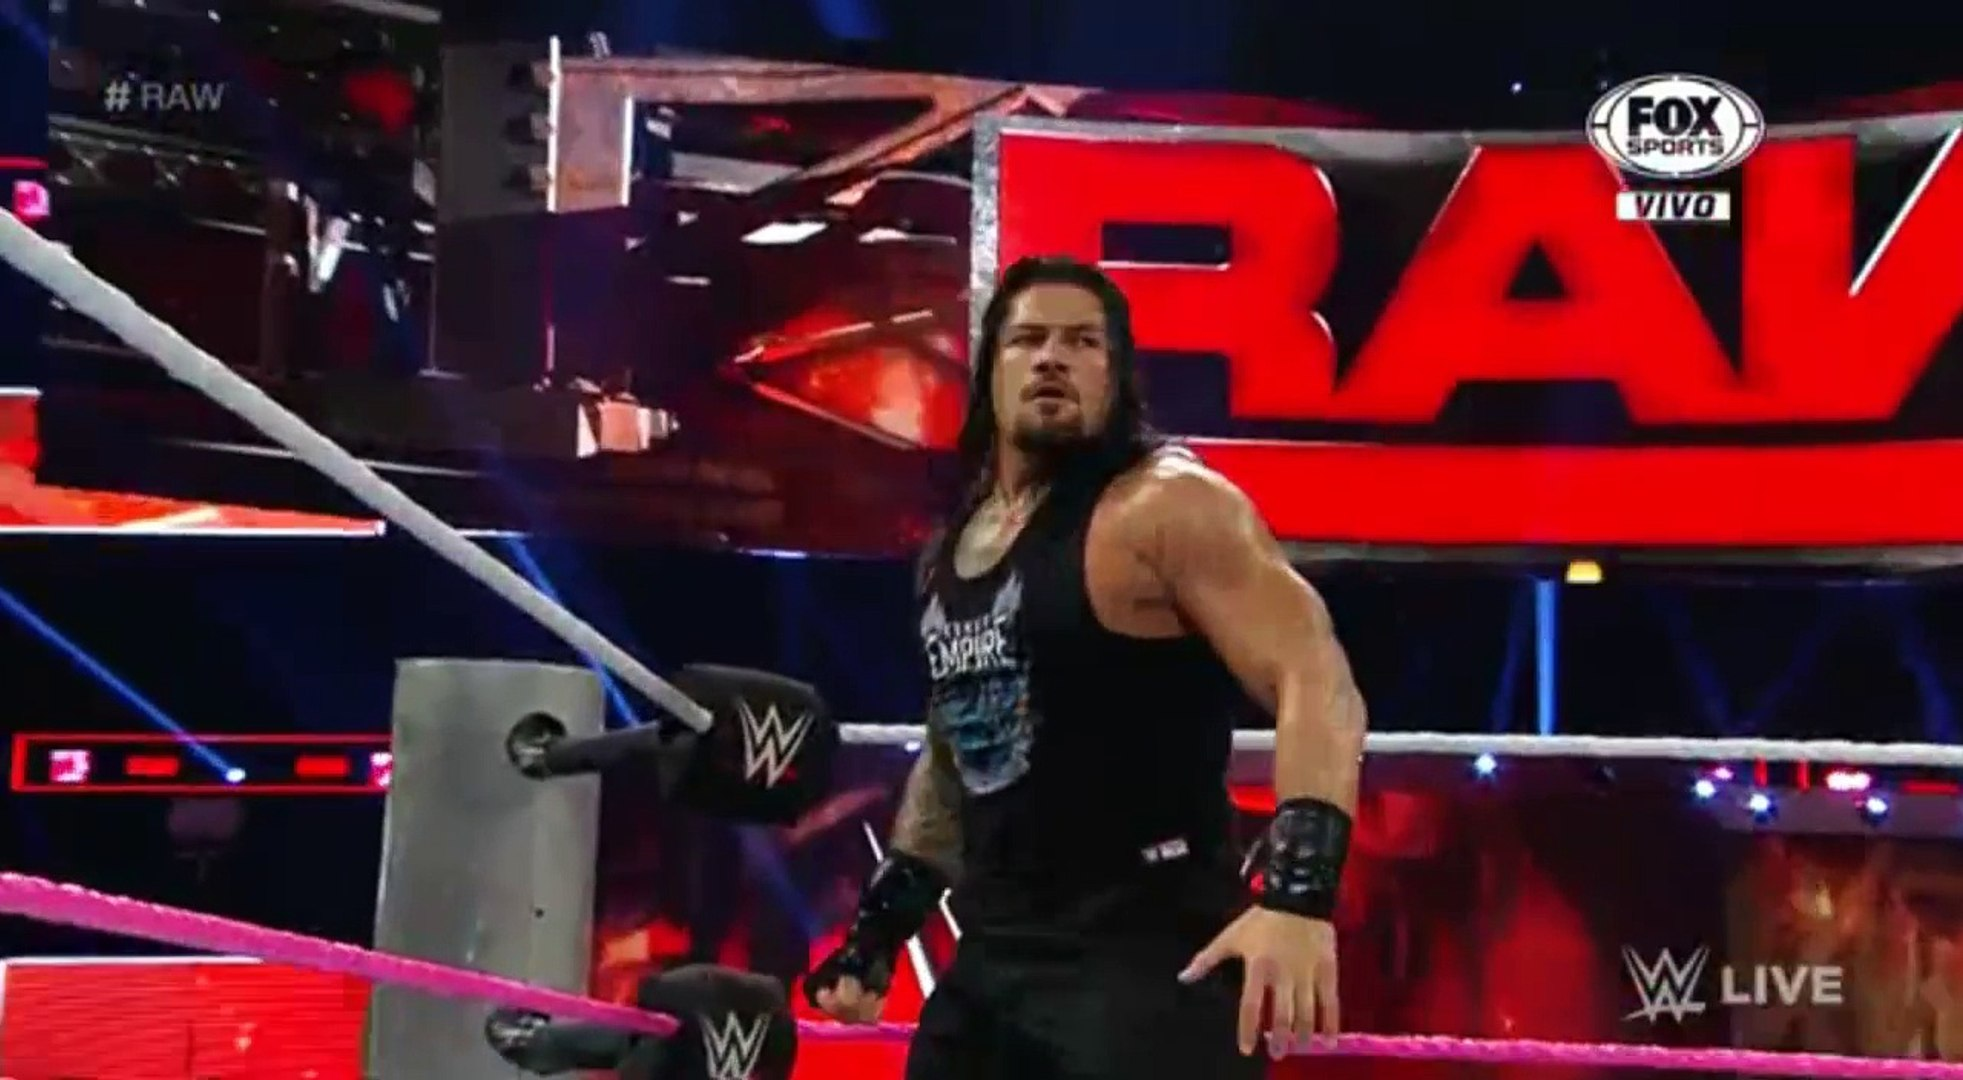 WWE RAW LIVE 3/10/16 HIGHLIGTHS ROMAN REIGNS VS RUSEV REMATCH IN HELL IN A CELL